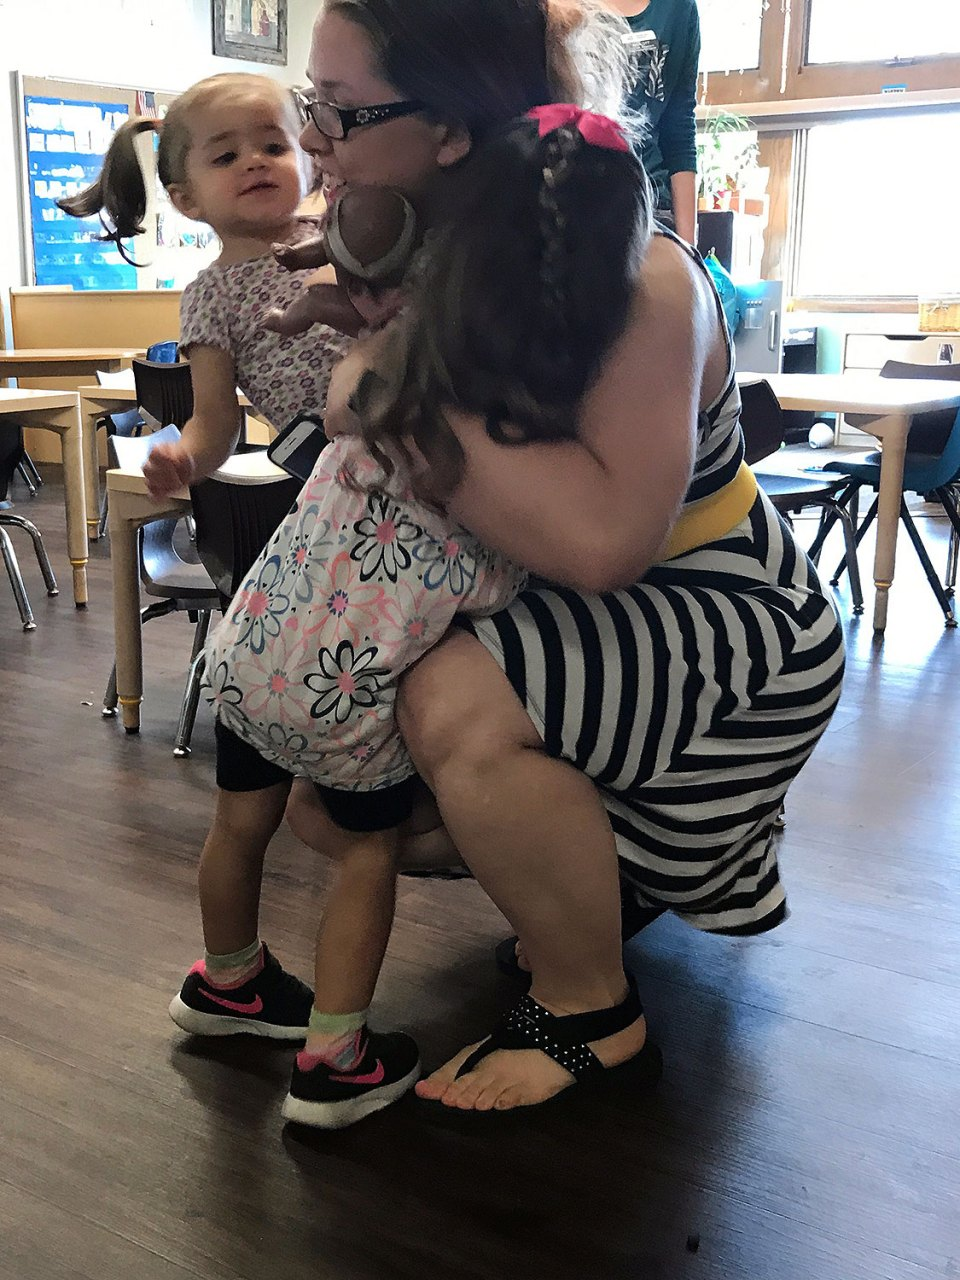 Sarah Sheikh, 2, foreground, greets her mother, Meghan, and younger sister with a running hug. Meghan says both daughters are now happy to spend the day in a child care program at the Center for Child Development at Wichita State University in Kansas.